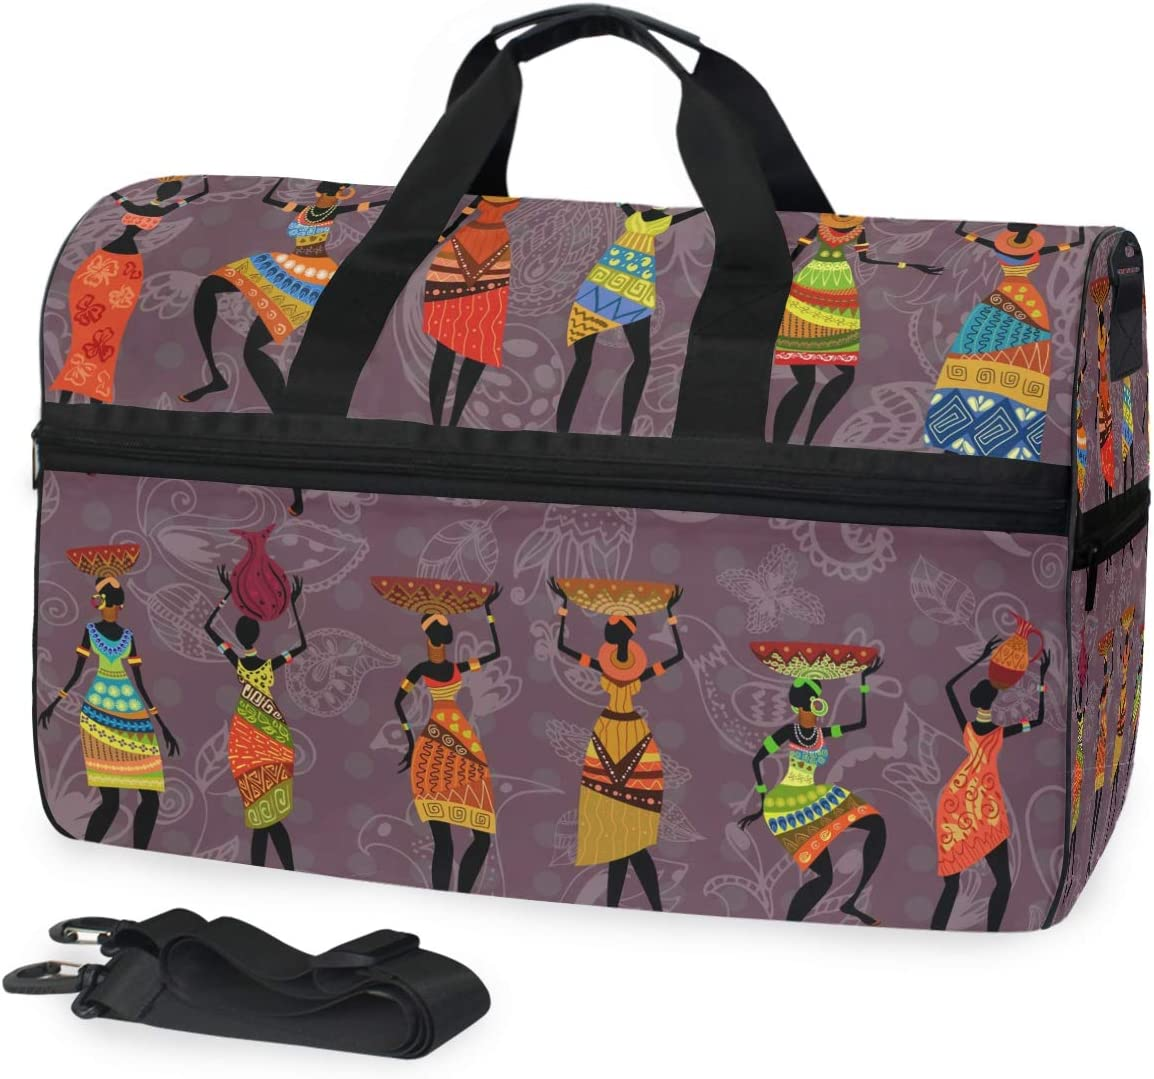 TFONE Ethnic African Woman Duffel Bag Sports Gym Weekend Bags with Shoe Compartmen